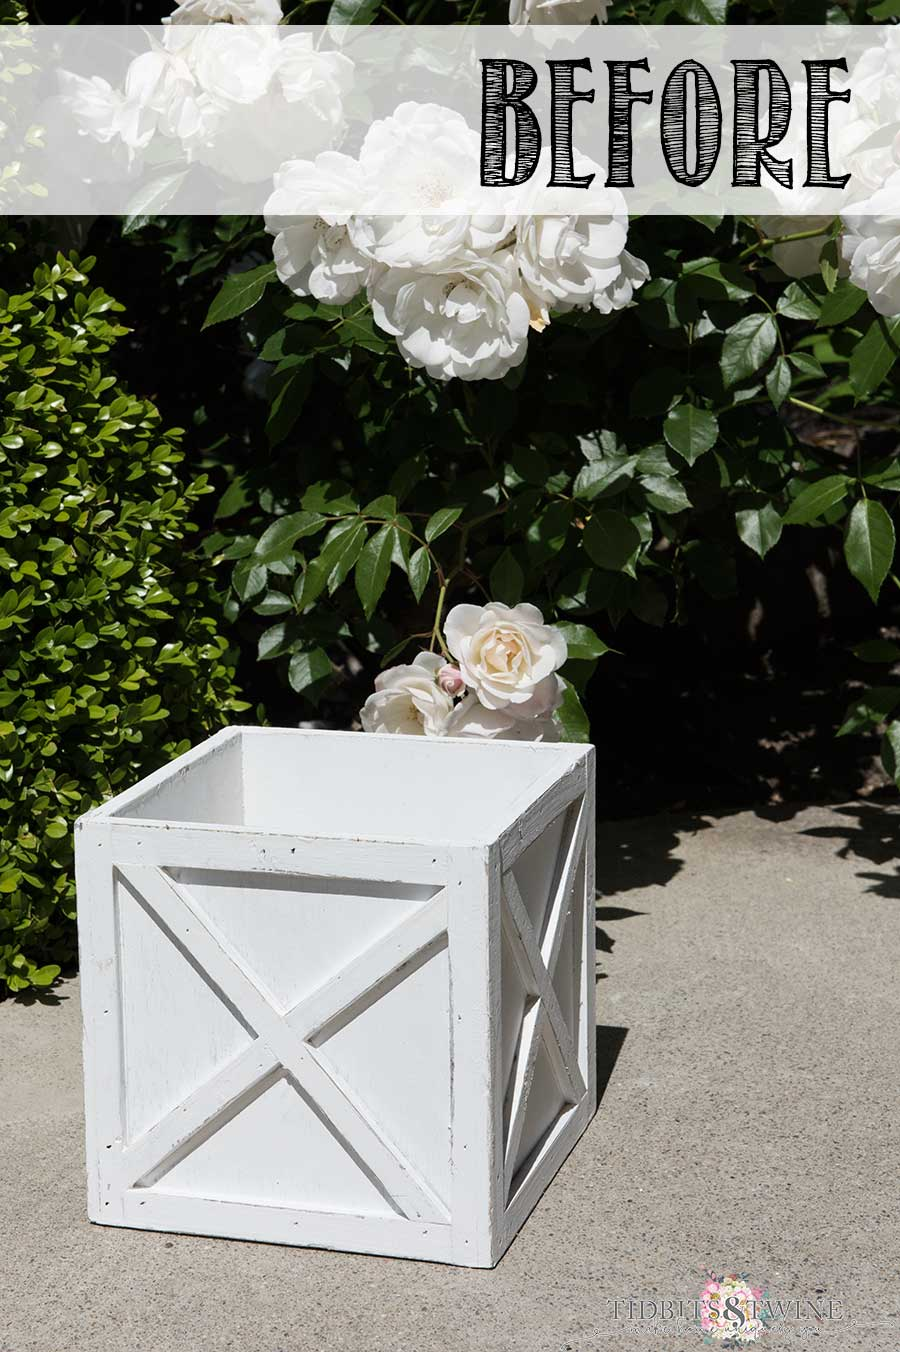 How to create a Restoration Hardware look using chalk paint: The BEFORE picture of the planter